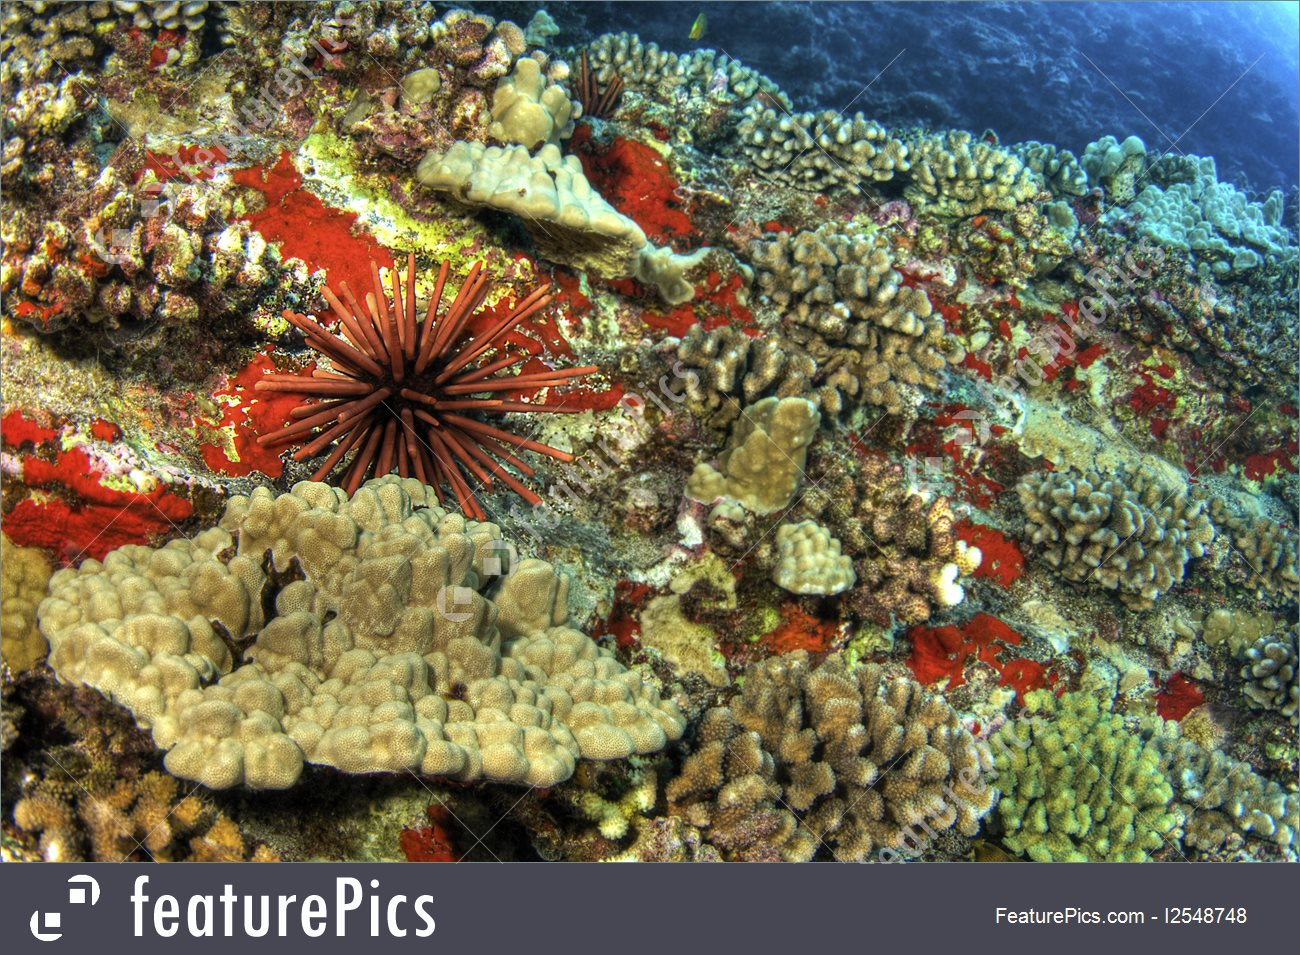 Aquatic Wildlife: Slate Pencil Urchin On Coral Reef.